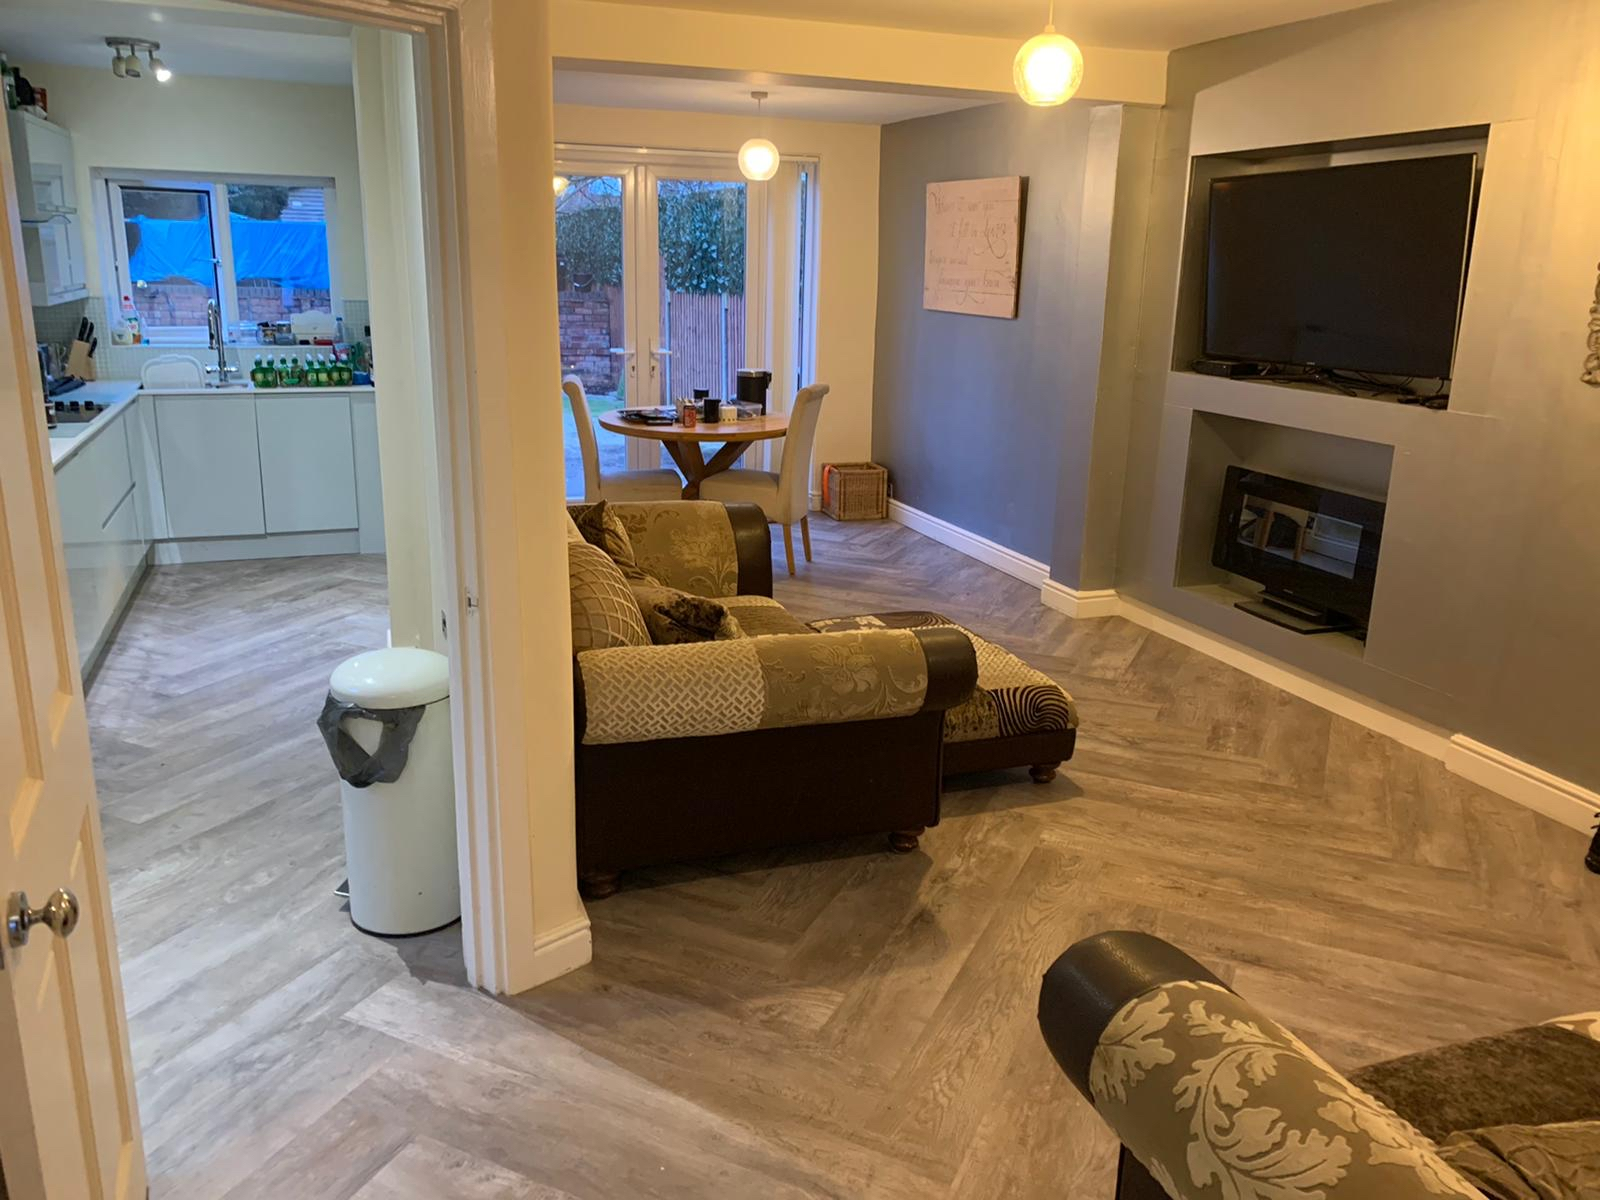 Karndean in large herringbone pattern to kitchen and family room